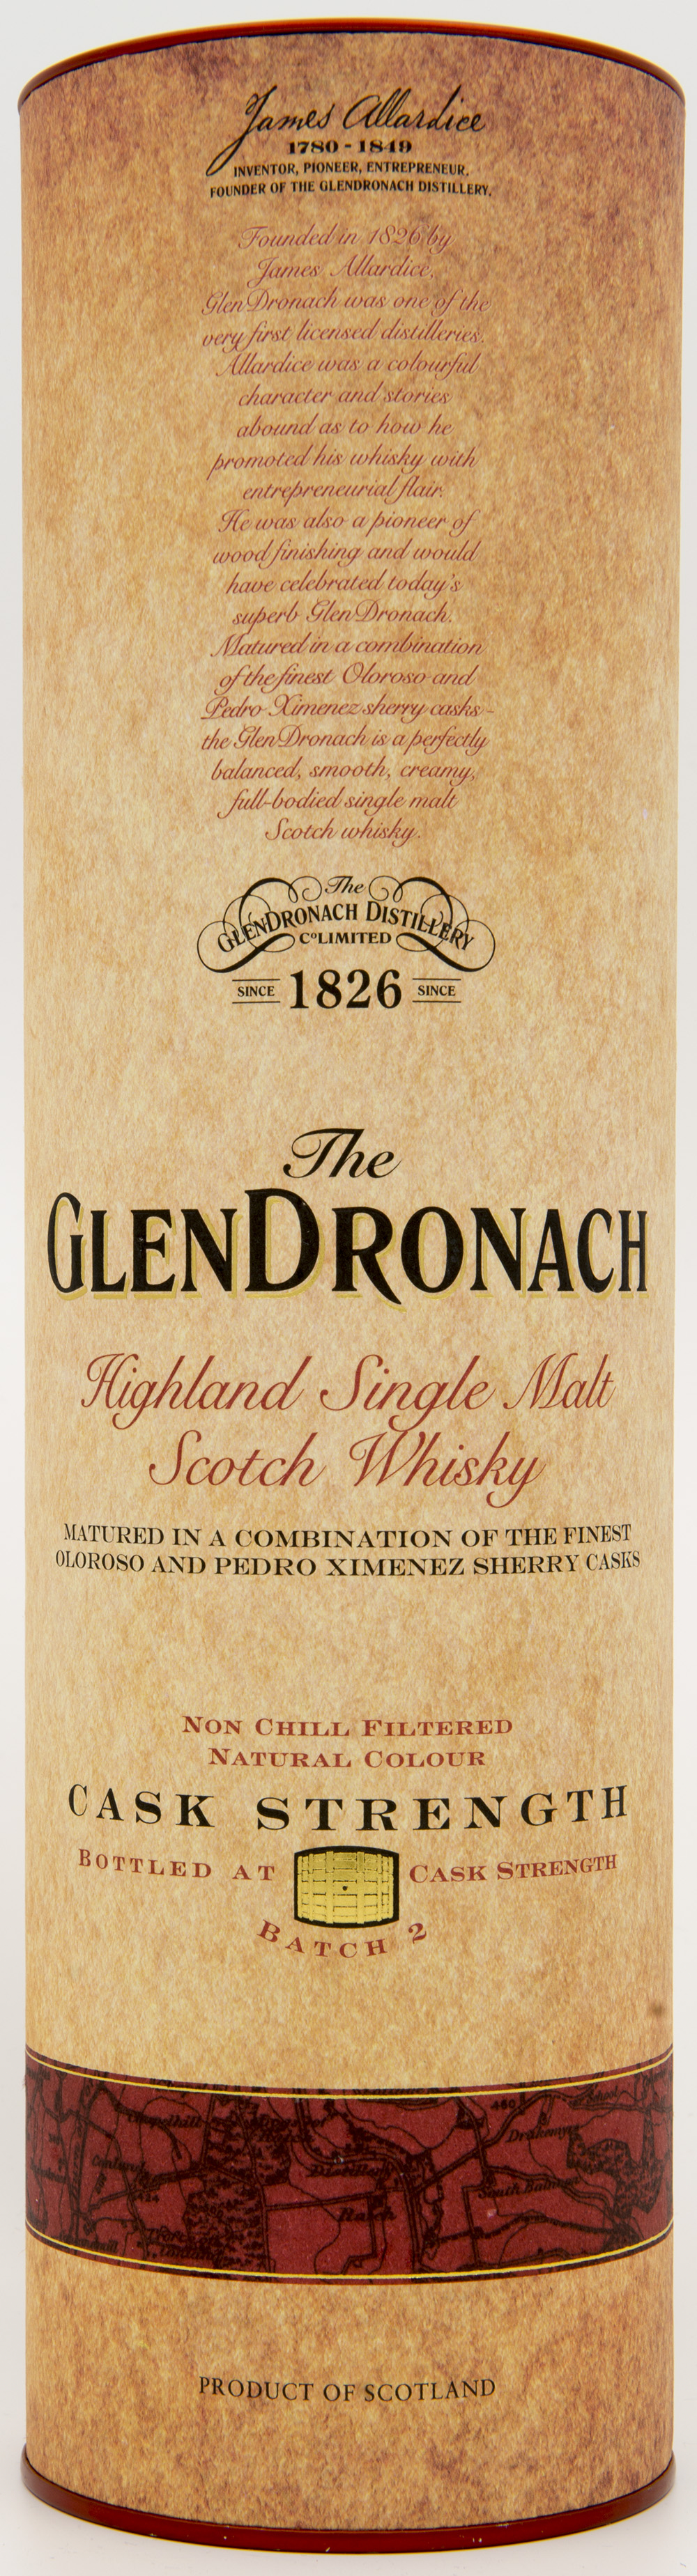 Billede: DSC_4838 - The Glendronach Cask Strength Batch 2 - tube front.jpg